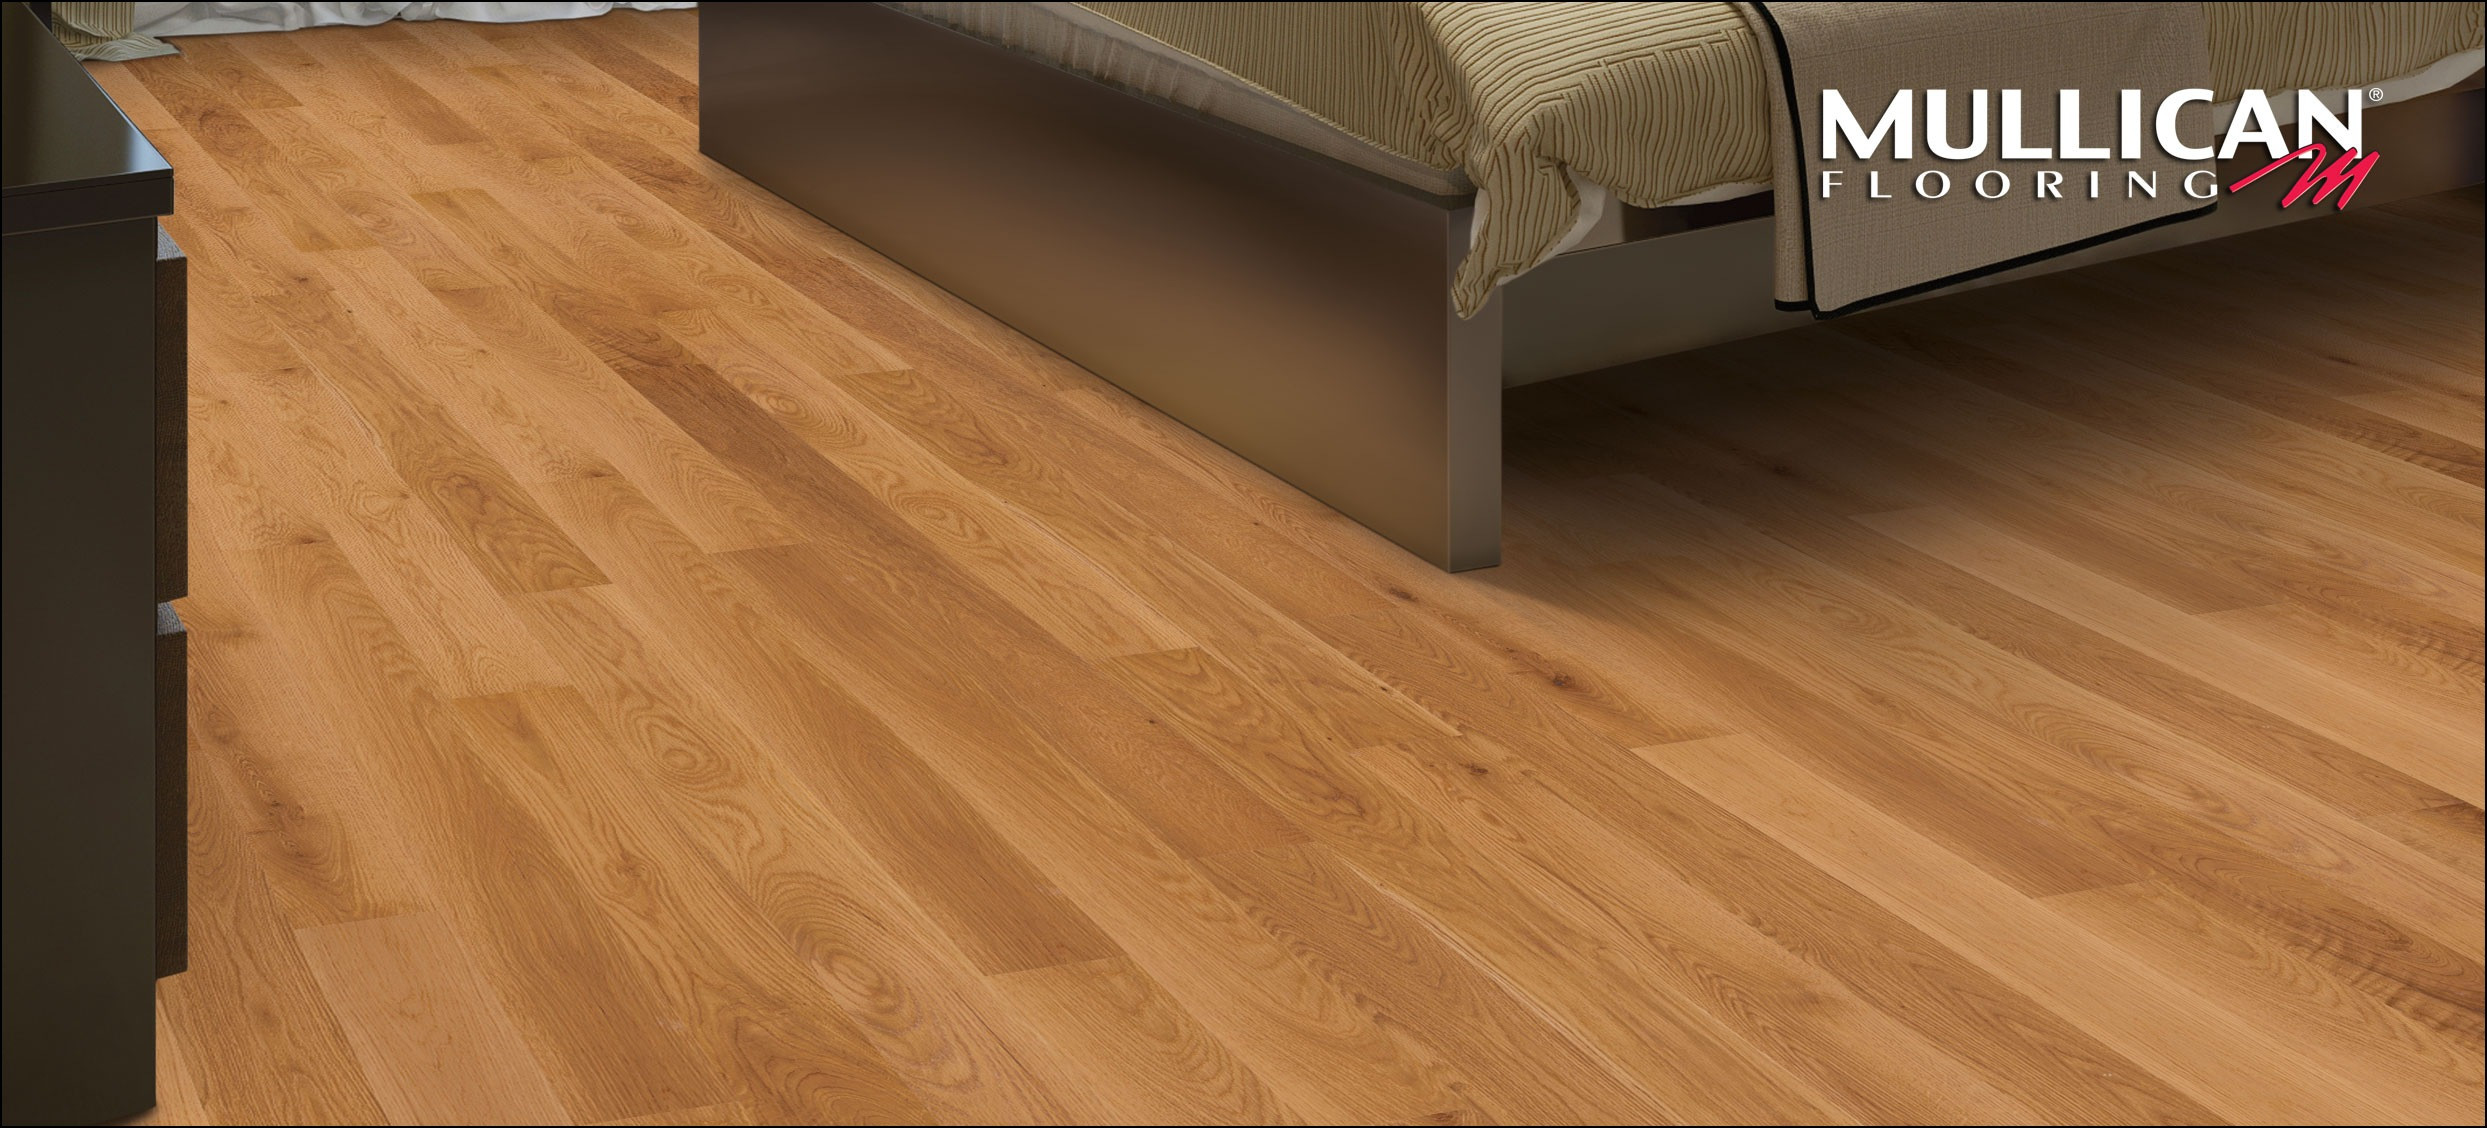 hardwood floor sanding cost per square foot of hardwood flooring suppliers france flooring ideas with regard to hardwood flooring installation san diego collection mullican flooring home of hardwood flooring installation san diego